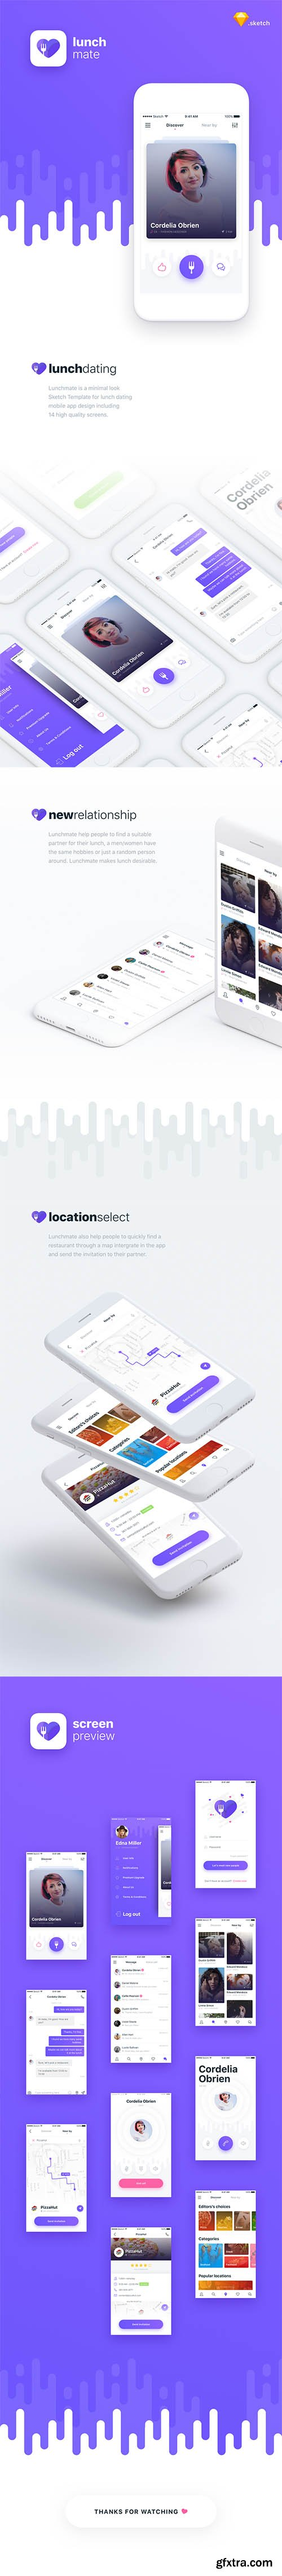 Lunchmate Dating UI Kit